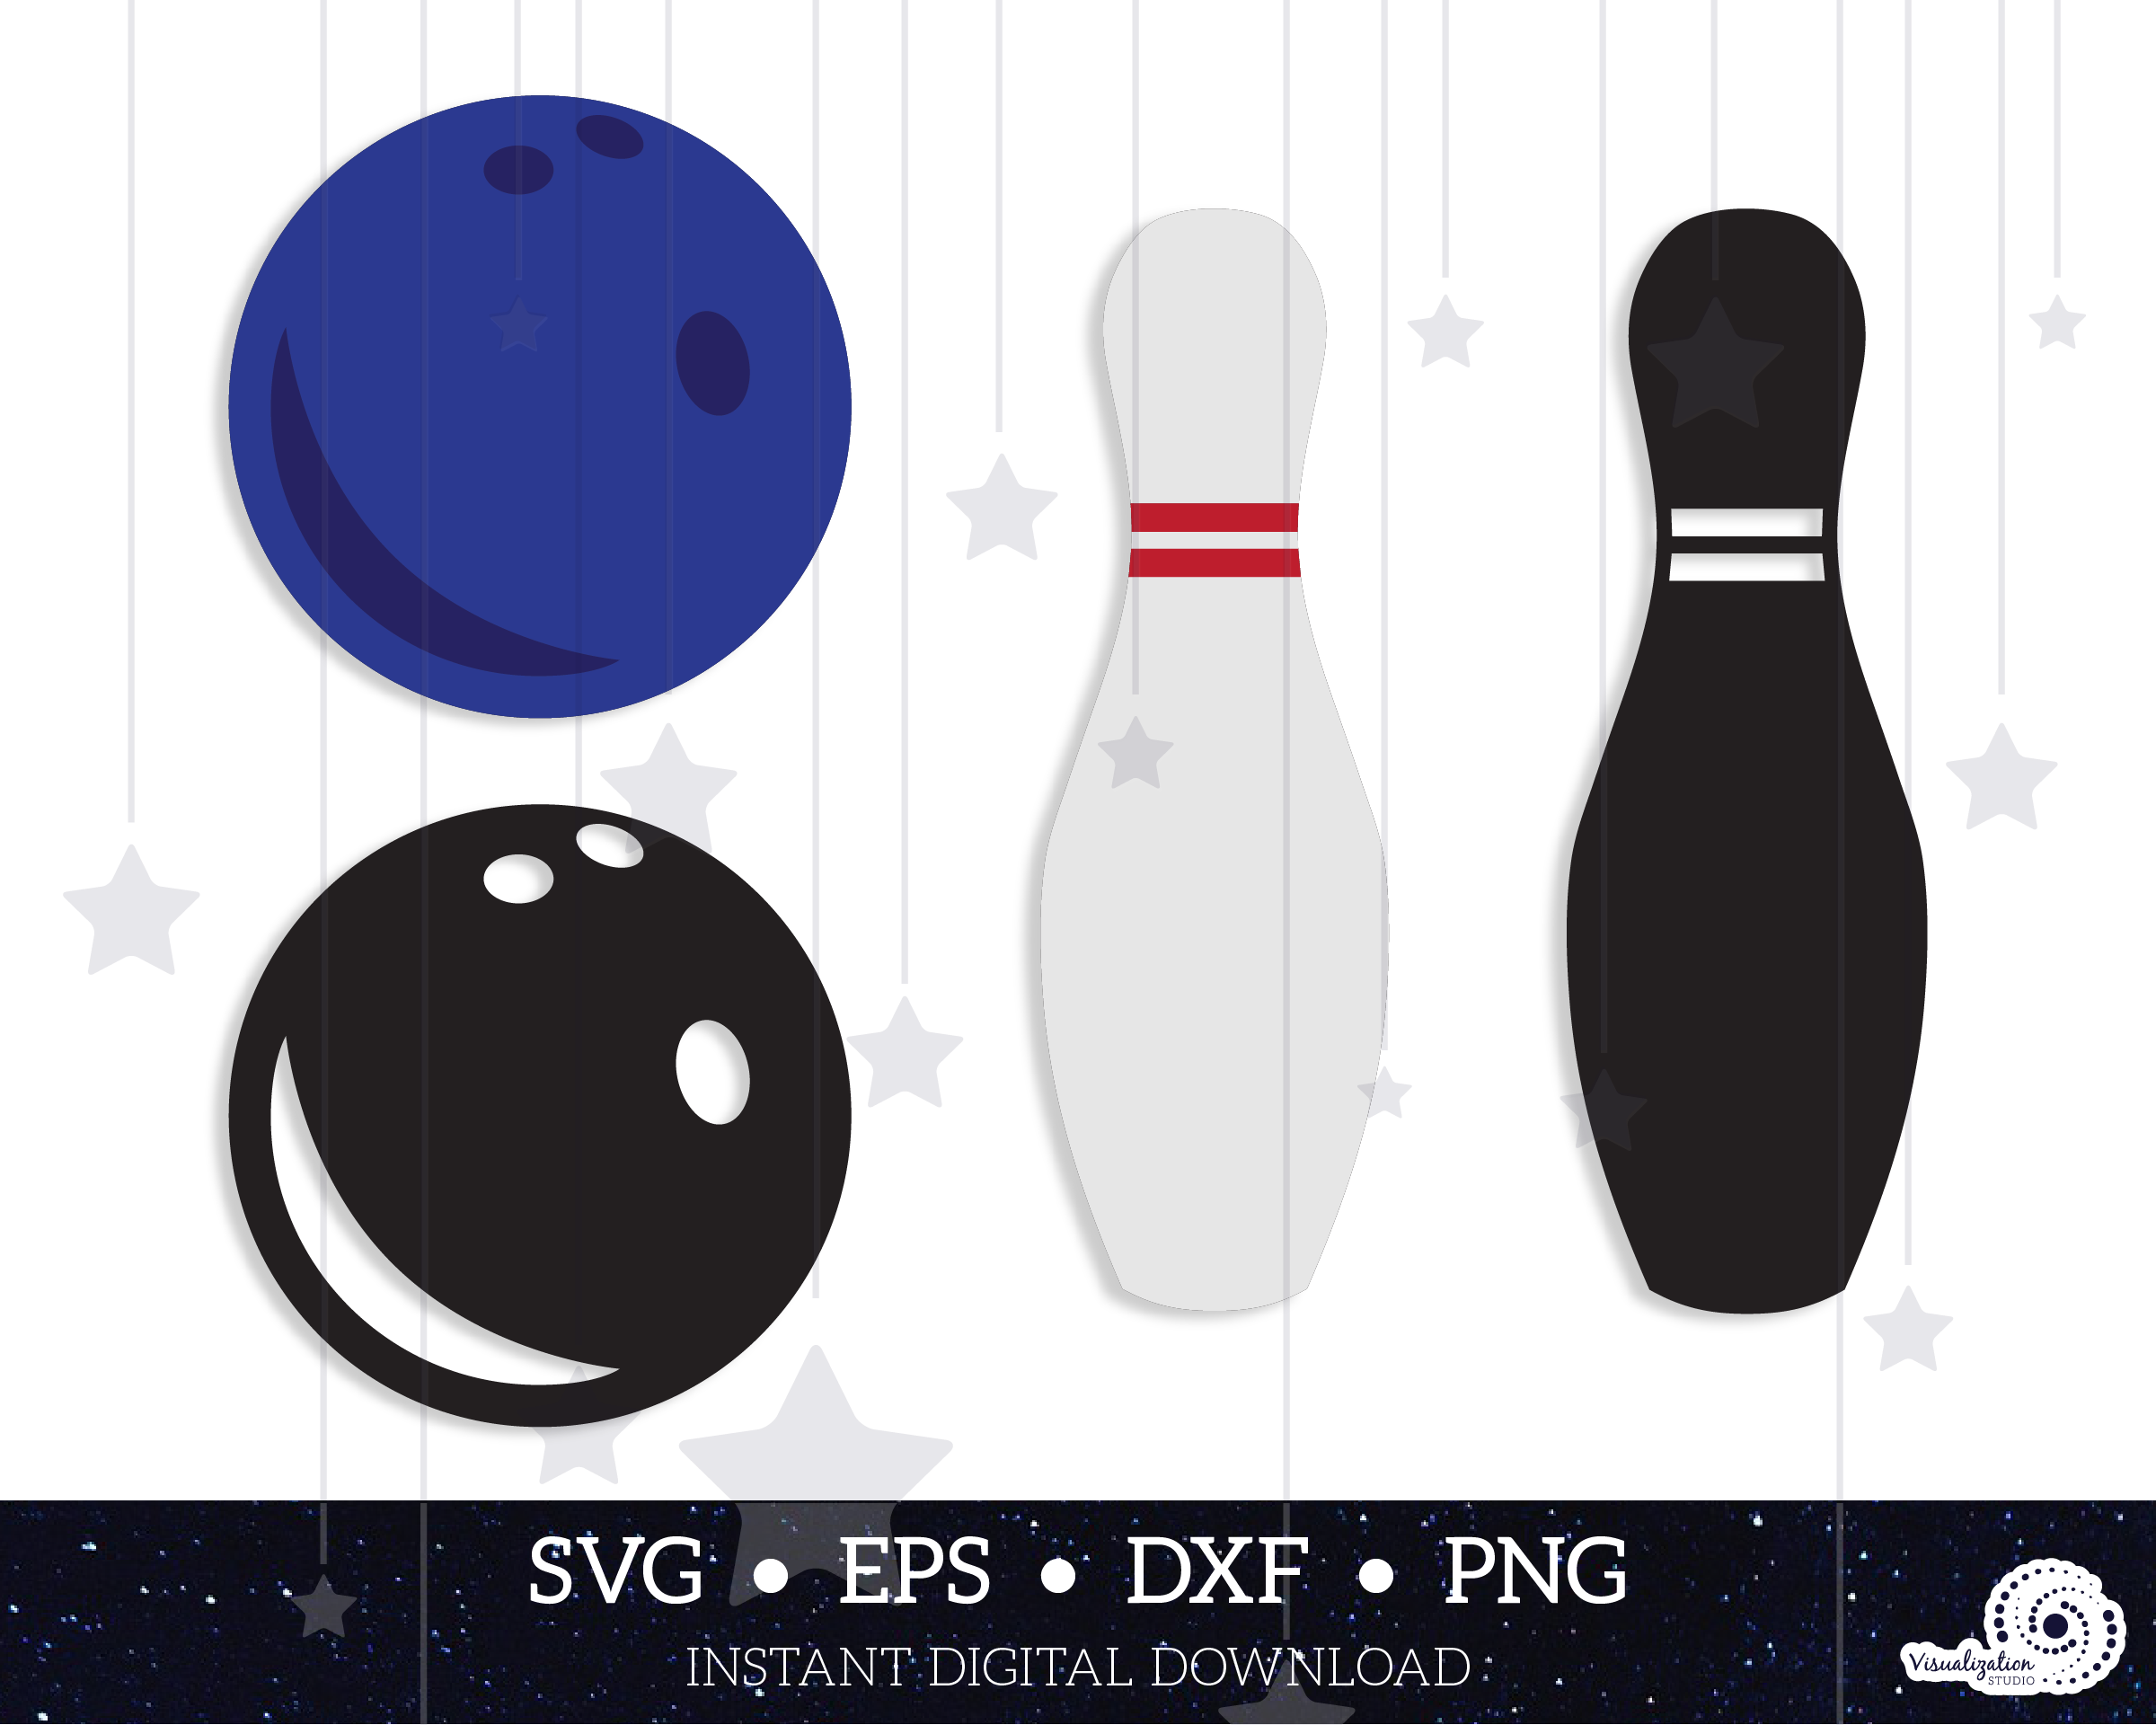 Bowling Ball Pin Silhouette Instant Digital Download Svg Dxf Eps Png In 2020 Bowling Ball Digital Bowling